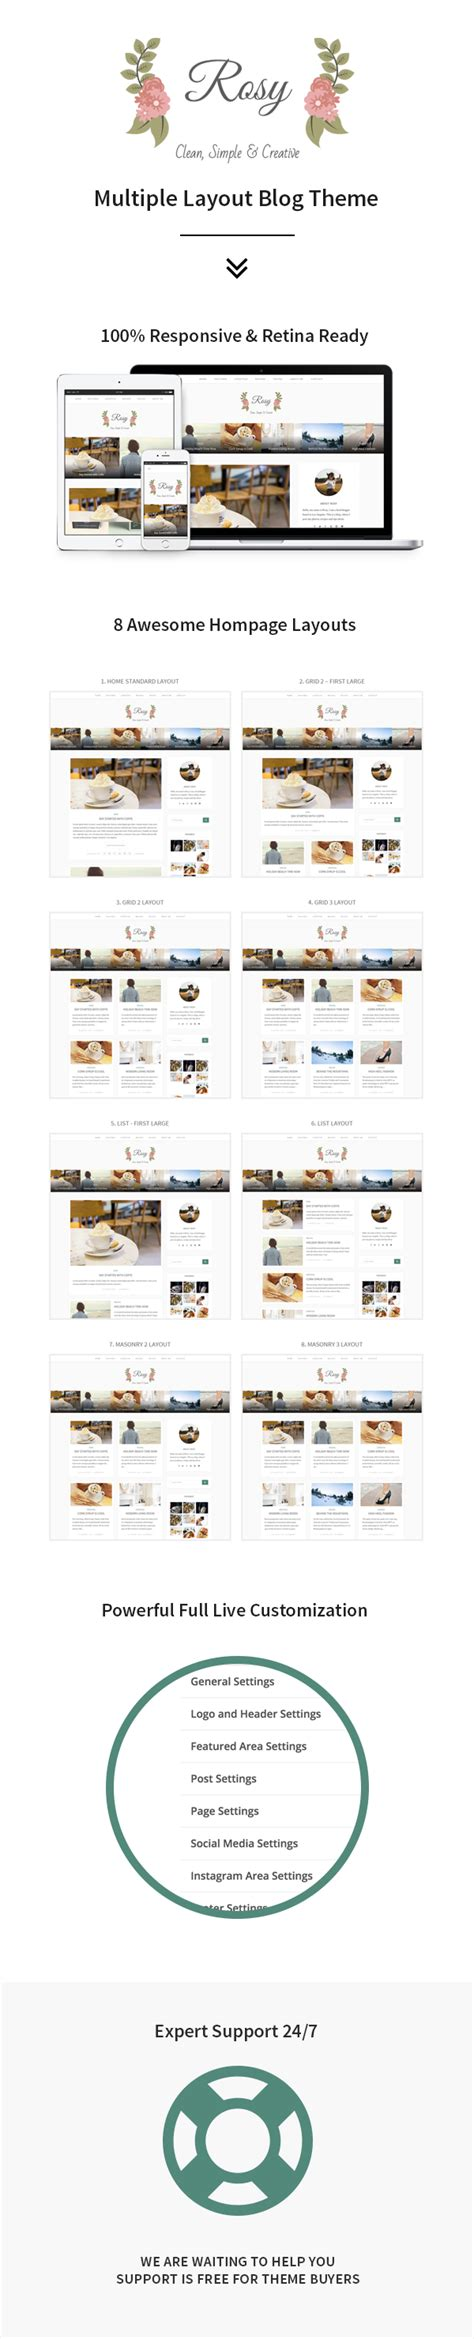 wordpress multiple layout rosy beautiful multiple layout wordpress blog theme